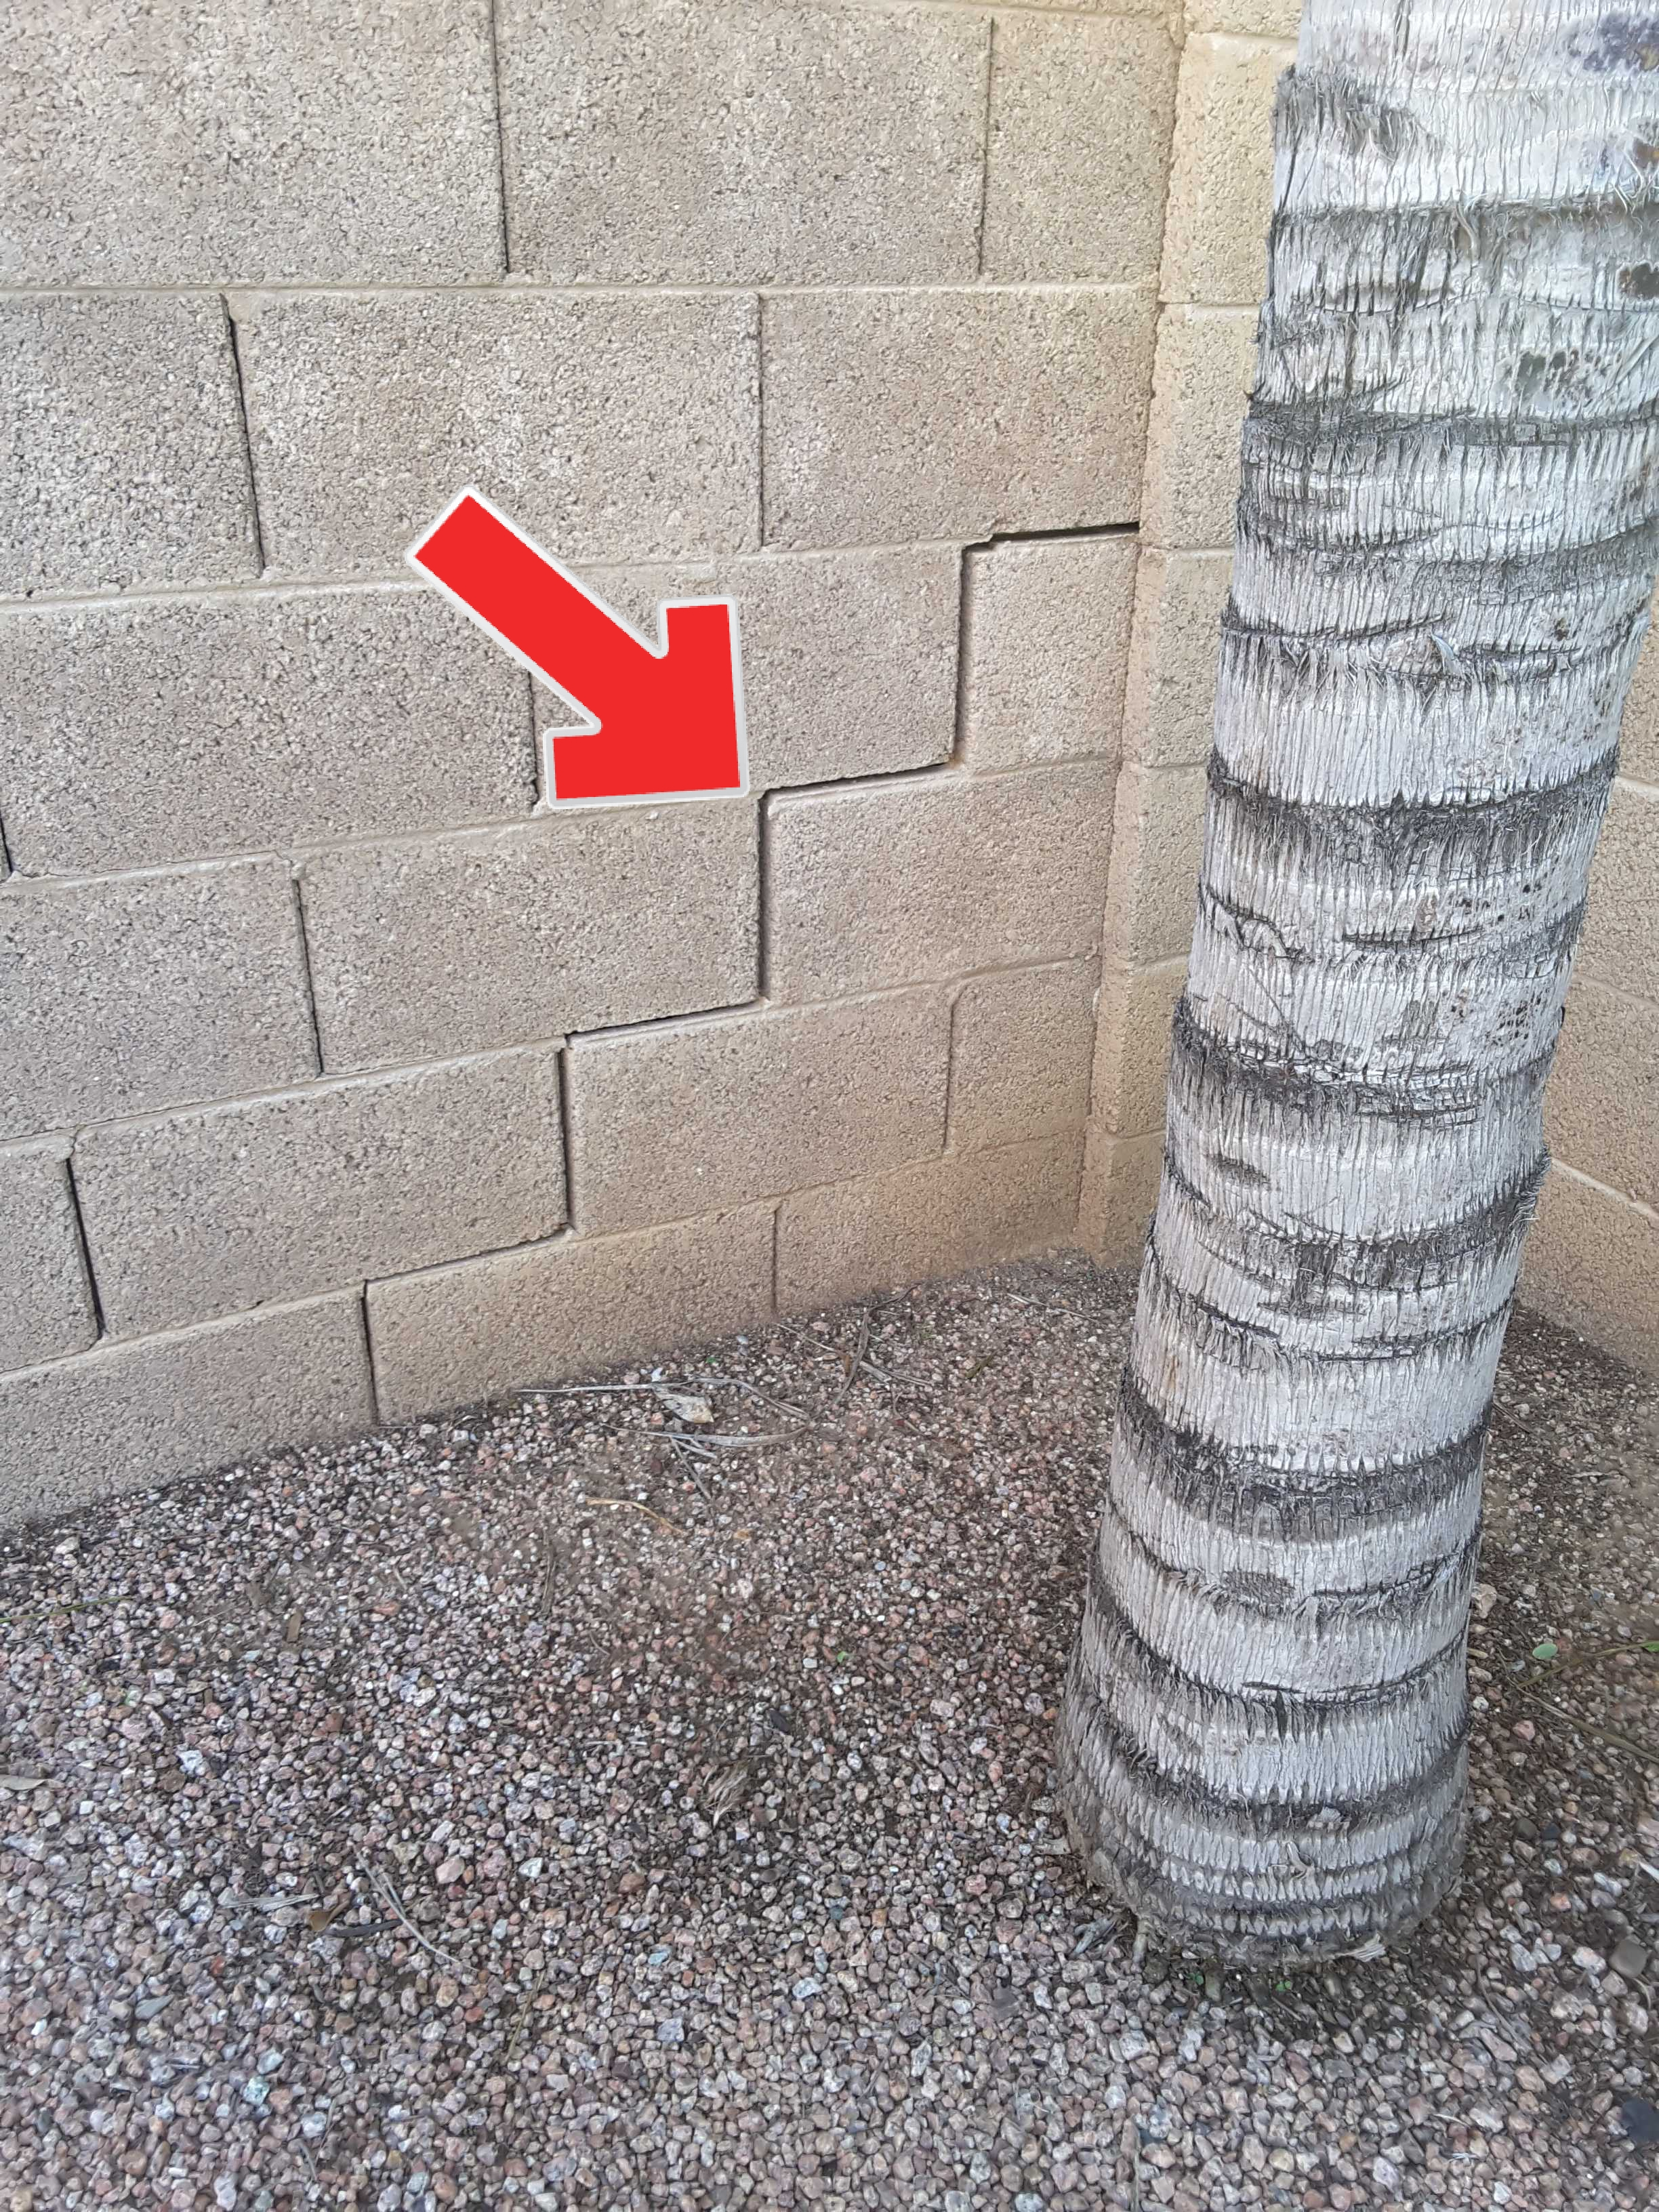 Trees planted too close to block walls will eventually cause cracking, displacement and costly repairs.